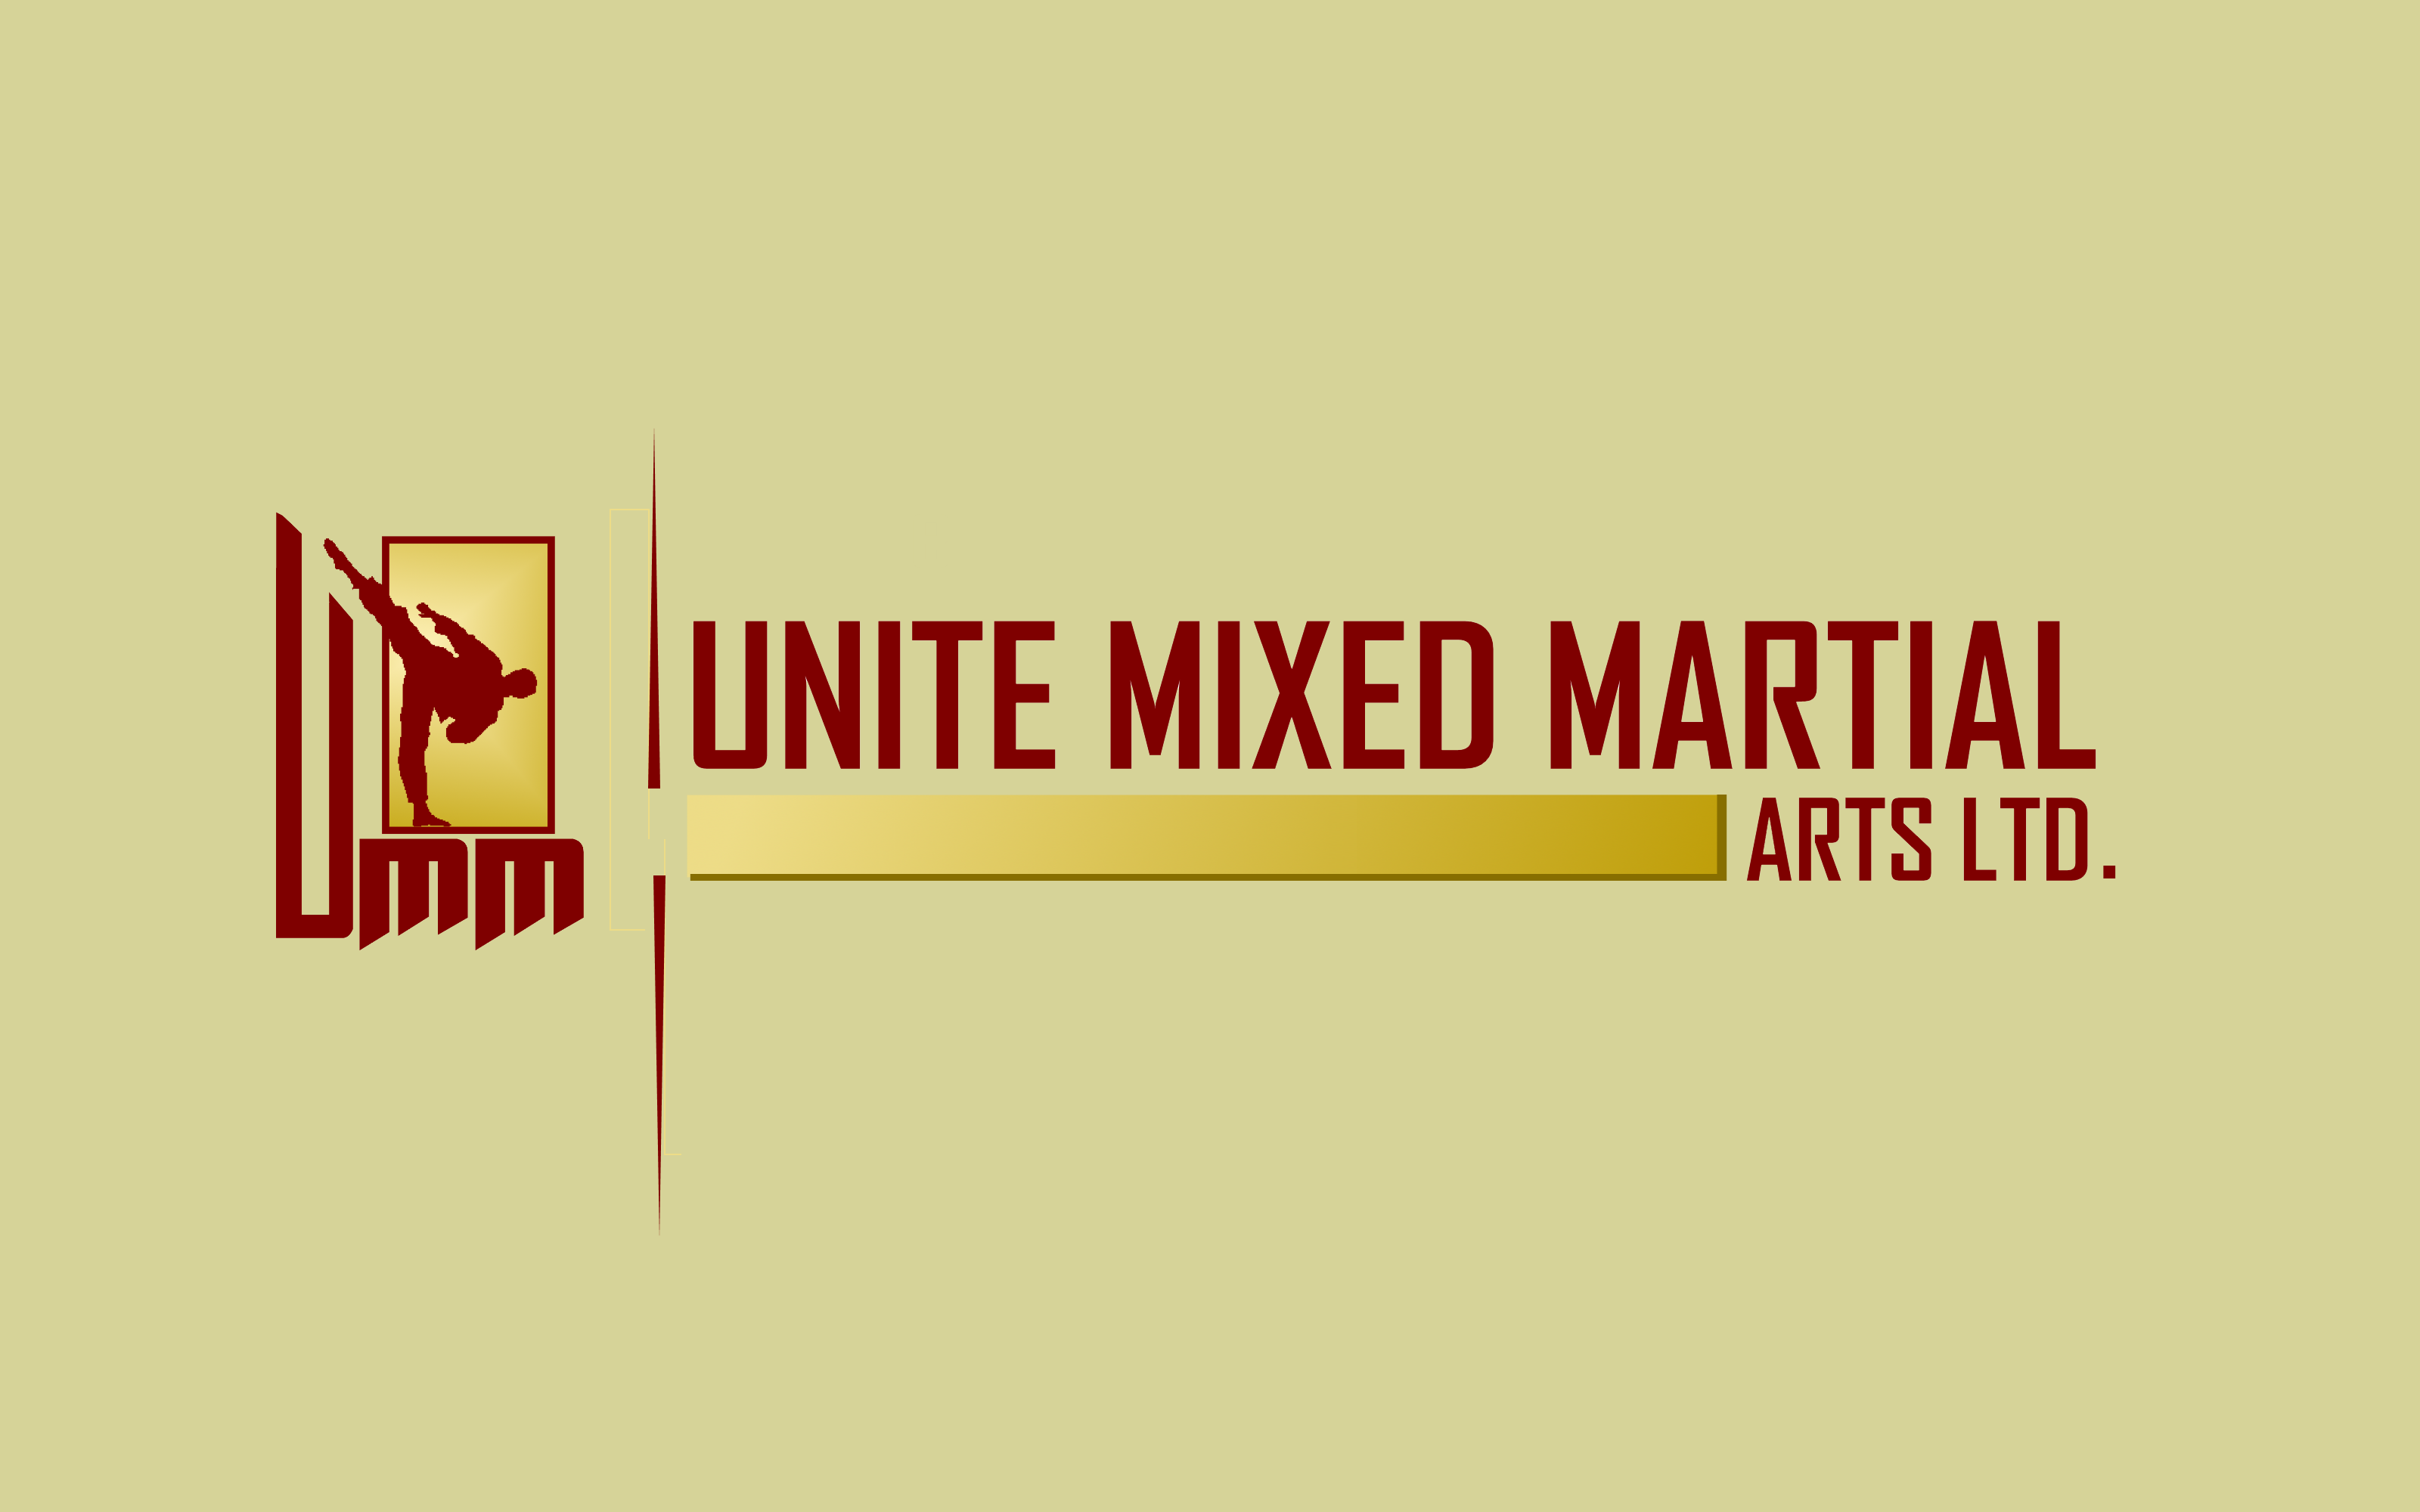 Logo Design by Roberto Bassi - Entry No. 33 in the Logo Design Contest Artistic Logo Design for United Mixed Martial Arts Ltd..